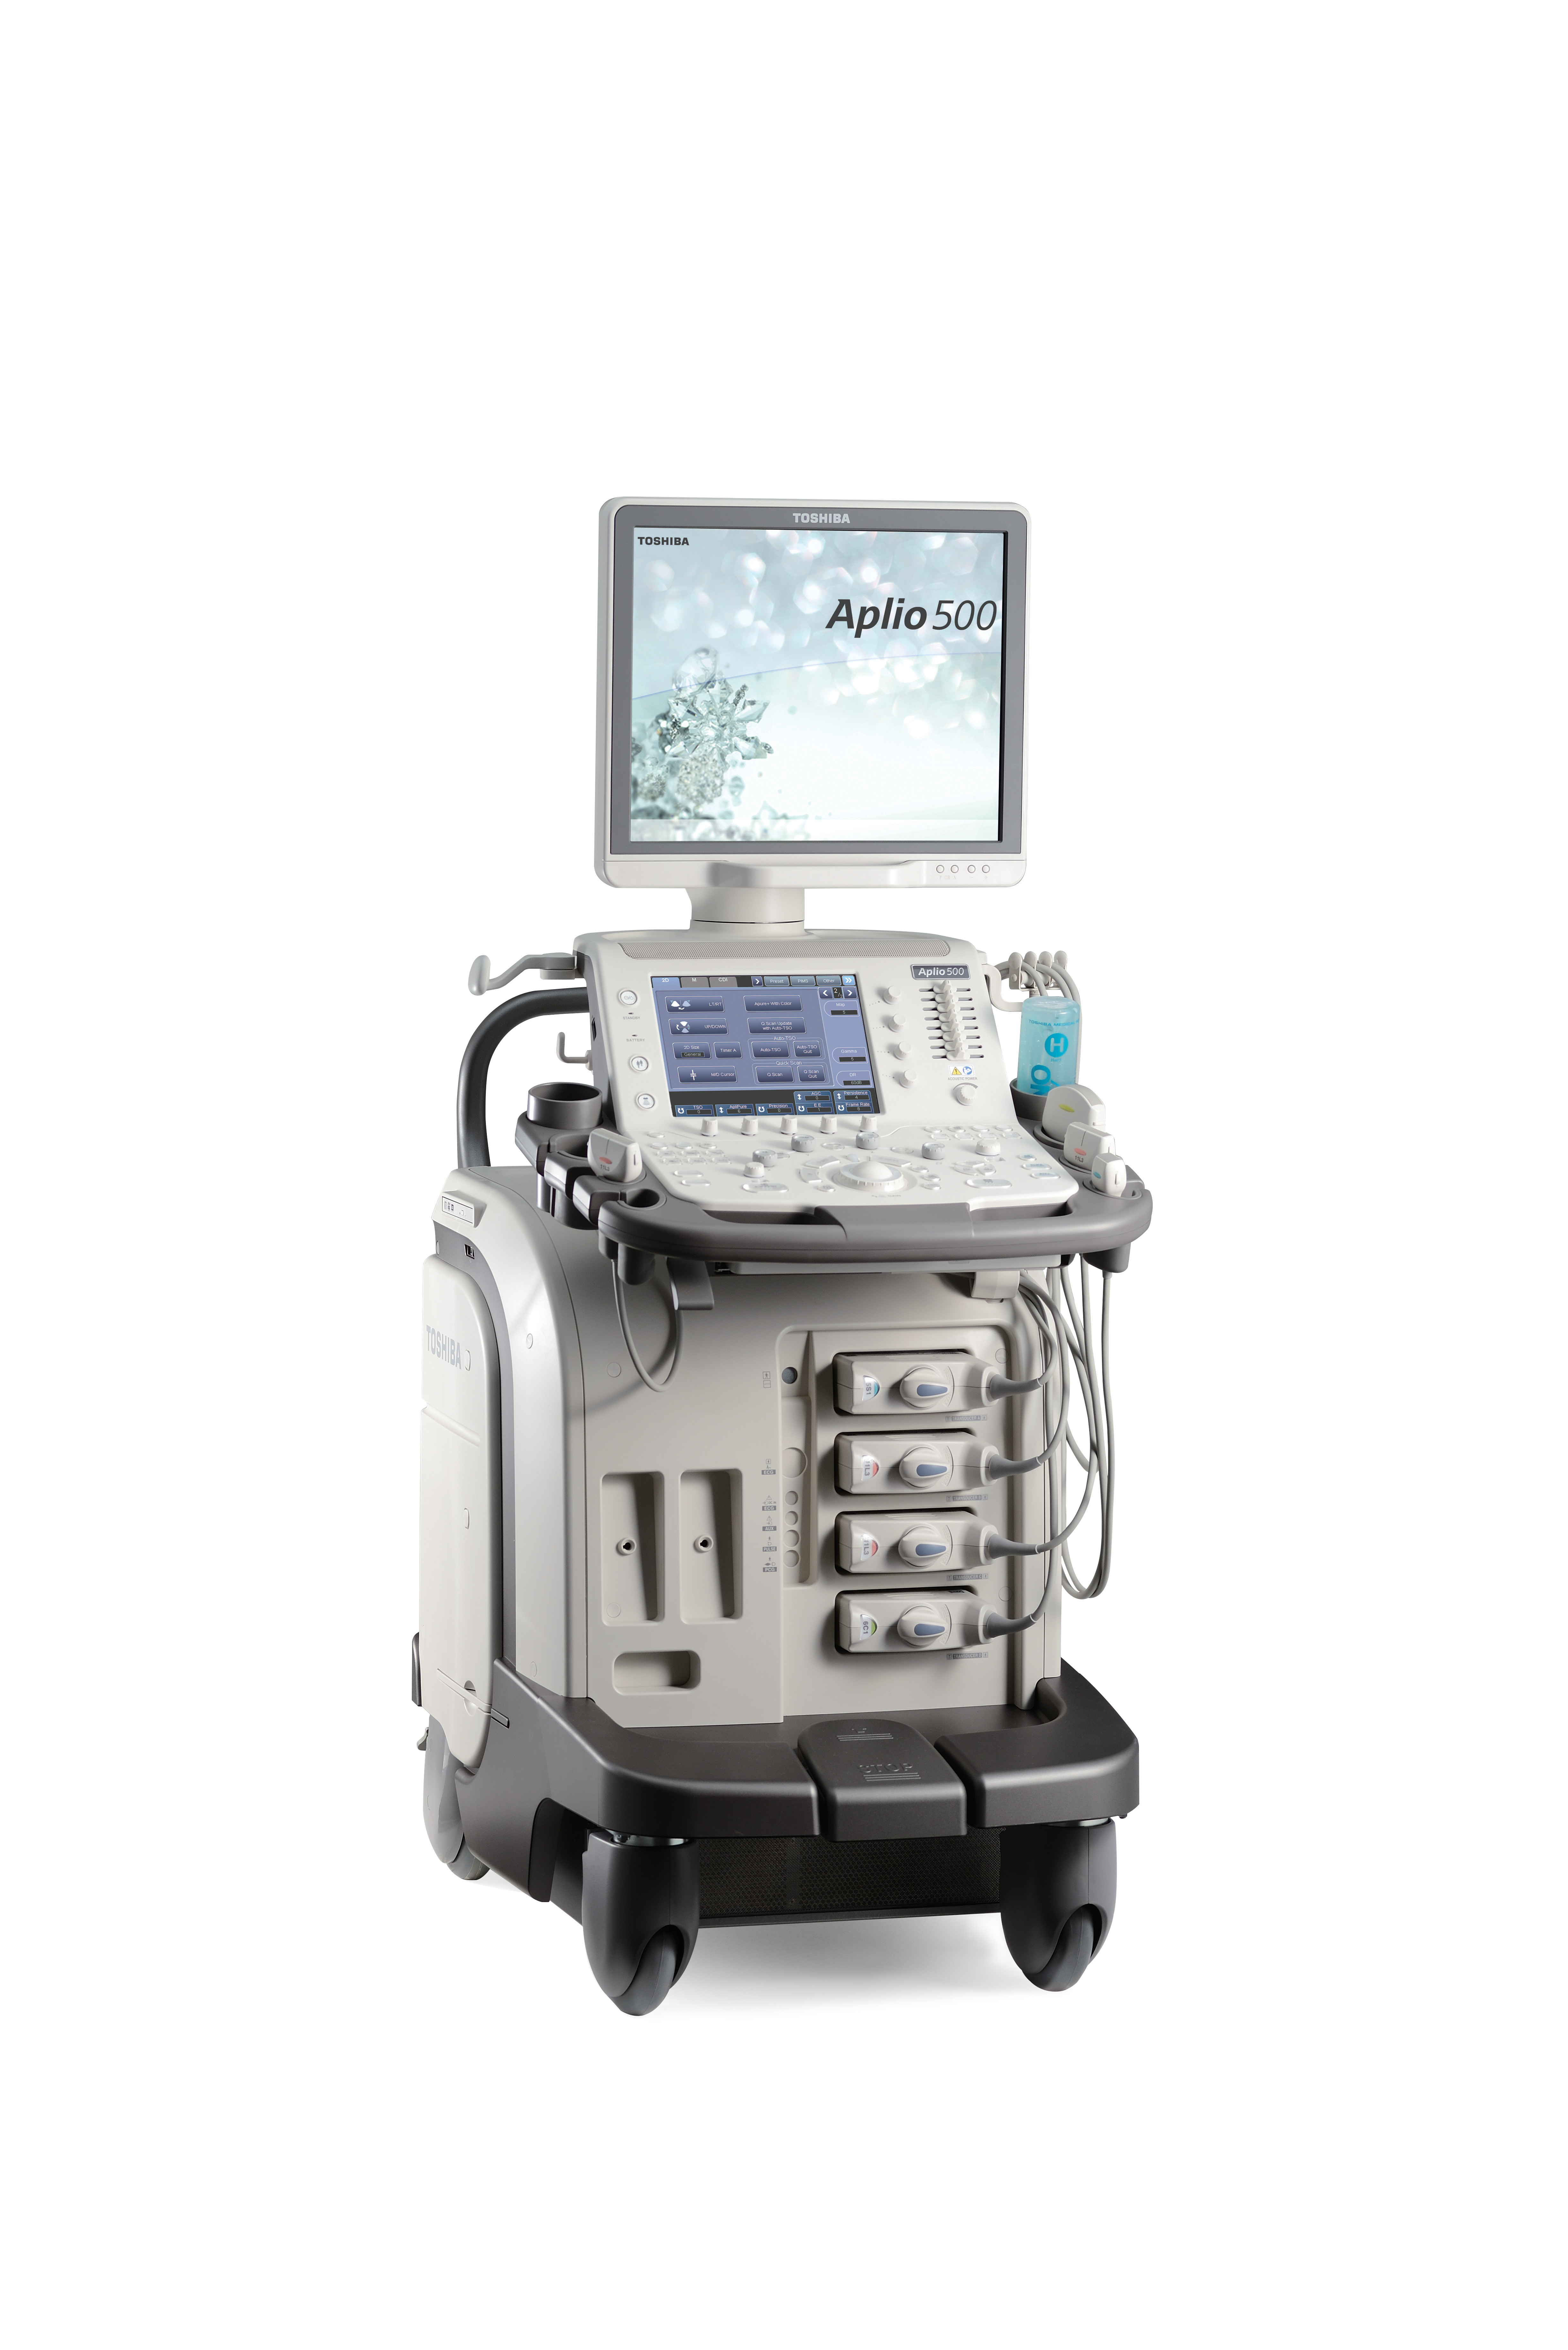 Toshiba's Aplio 500 Platinum system and its comprehensive contrast imaging package expand the clinical utility of ultrasound by delivering high quality images for increased diagnostic confidence.